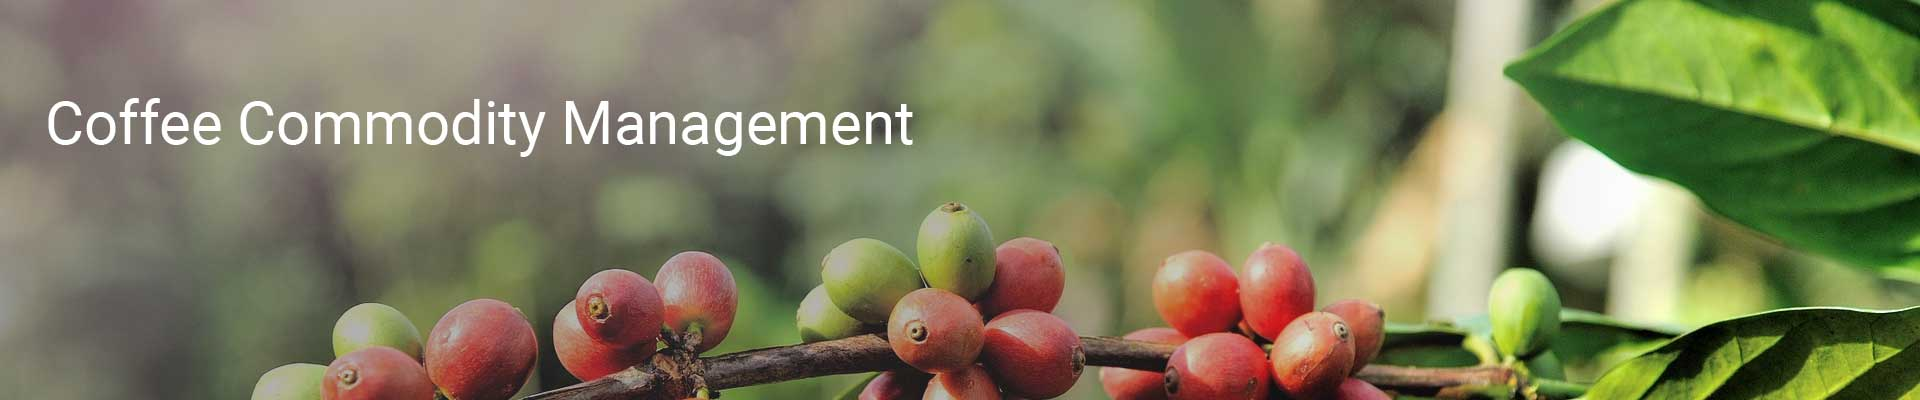 coffee commodity management-01